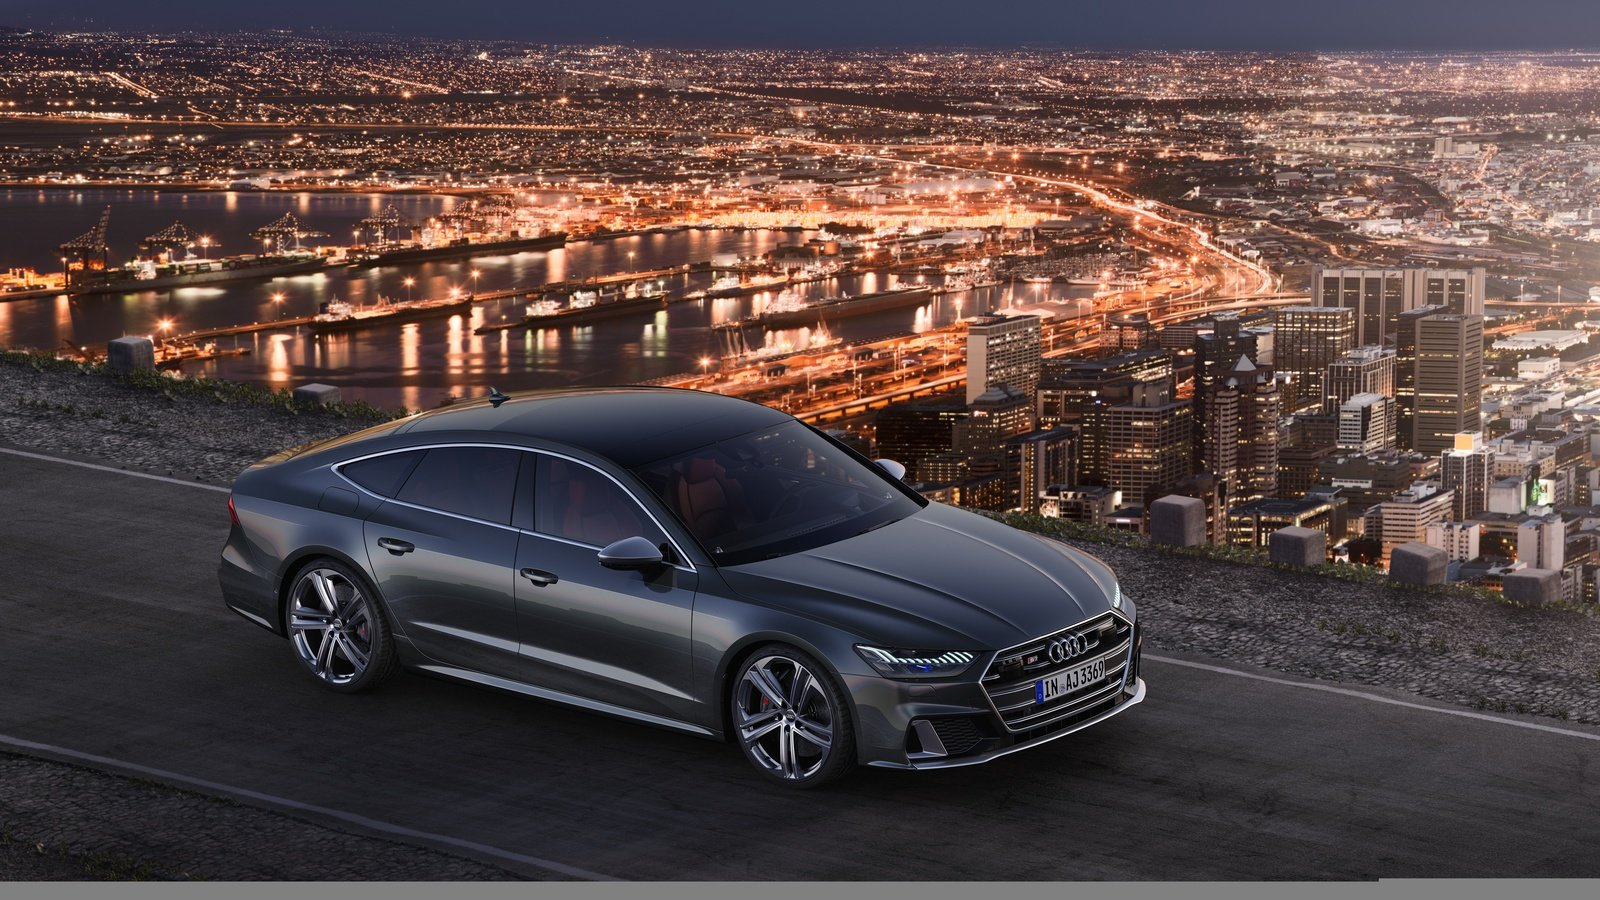 Wallpaper Of The Day 2020 Audi S7 Sportback Top Speed